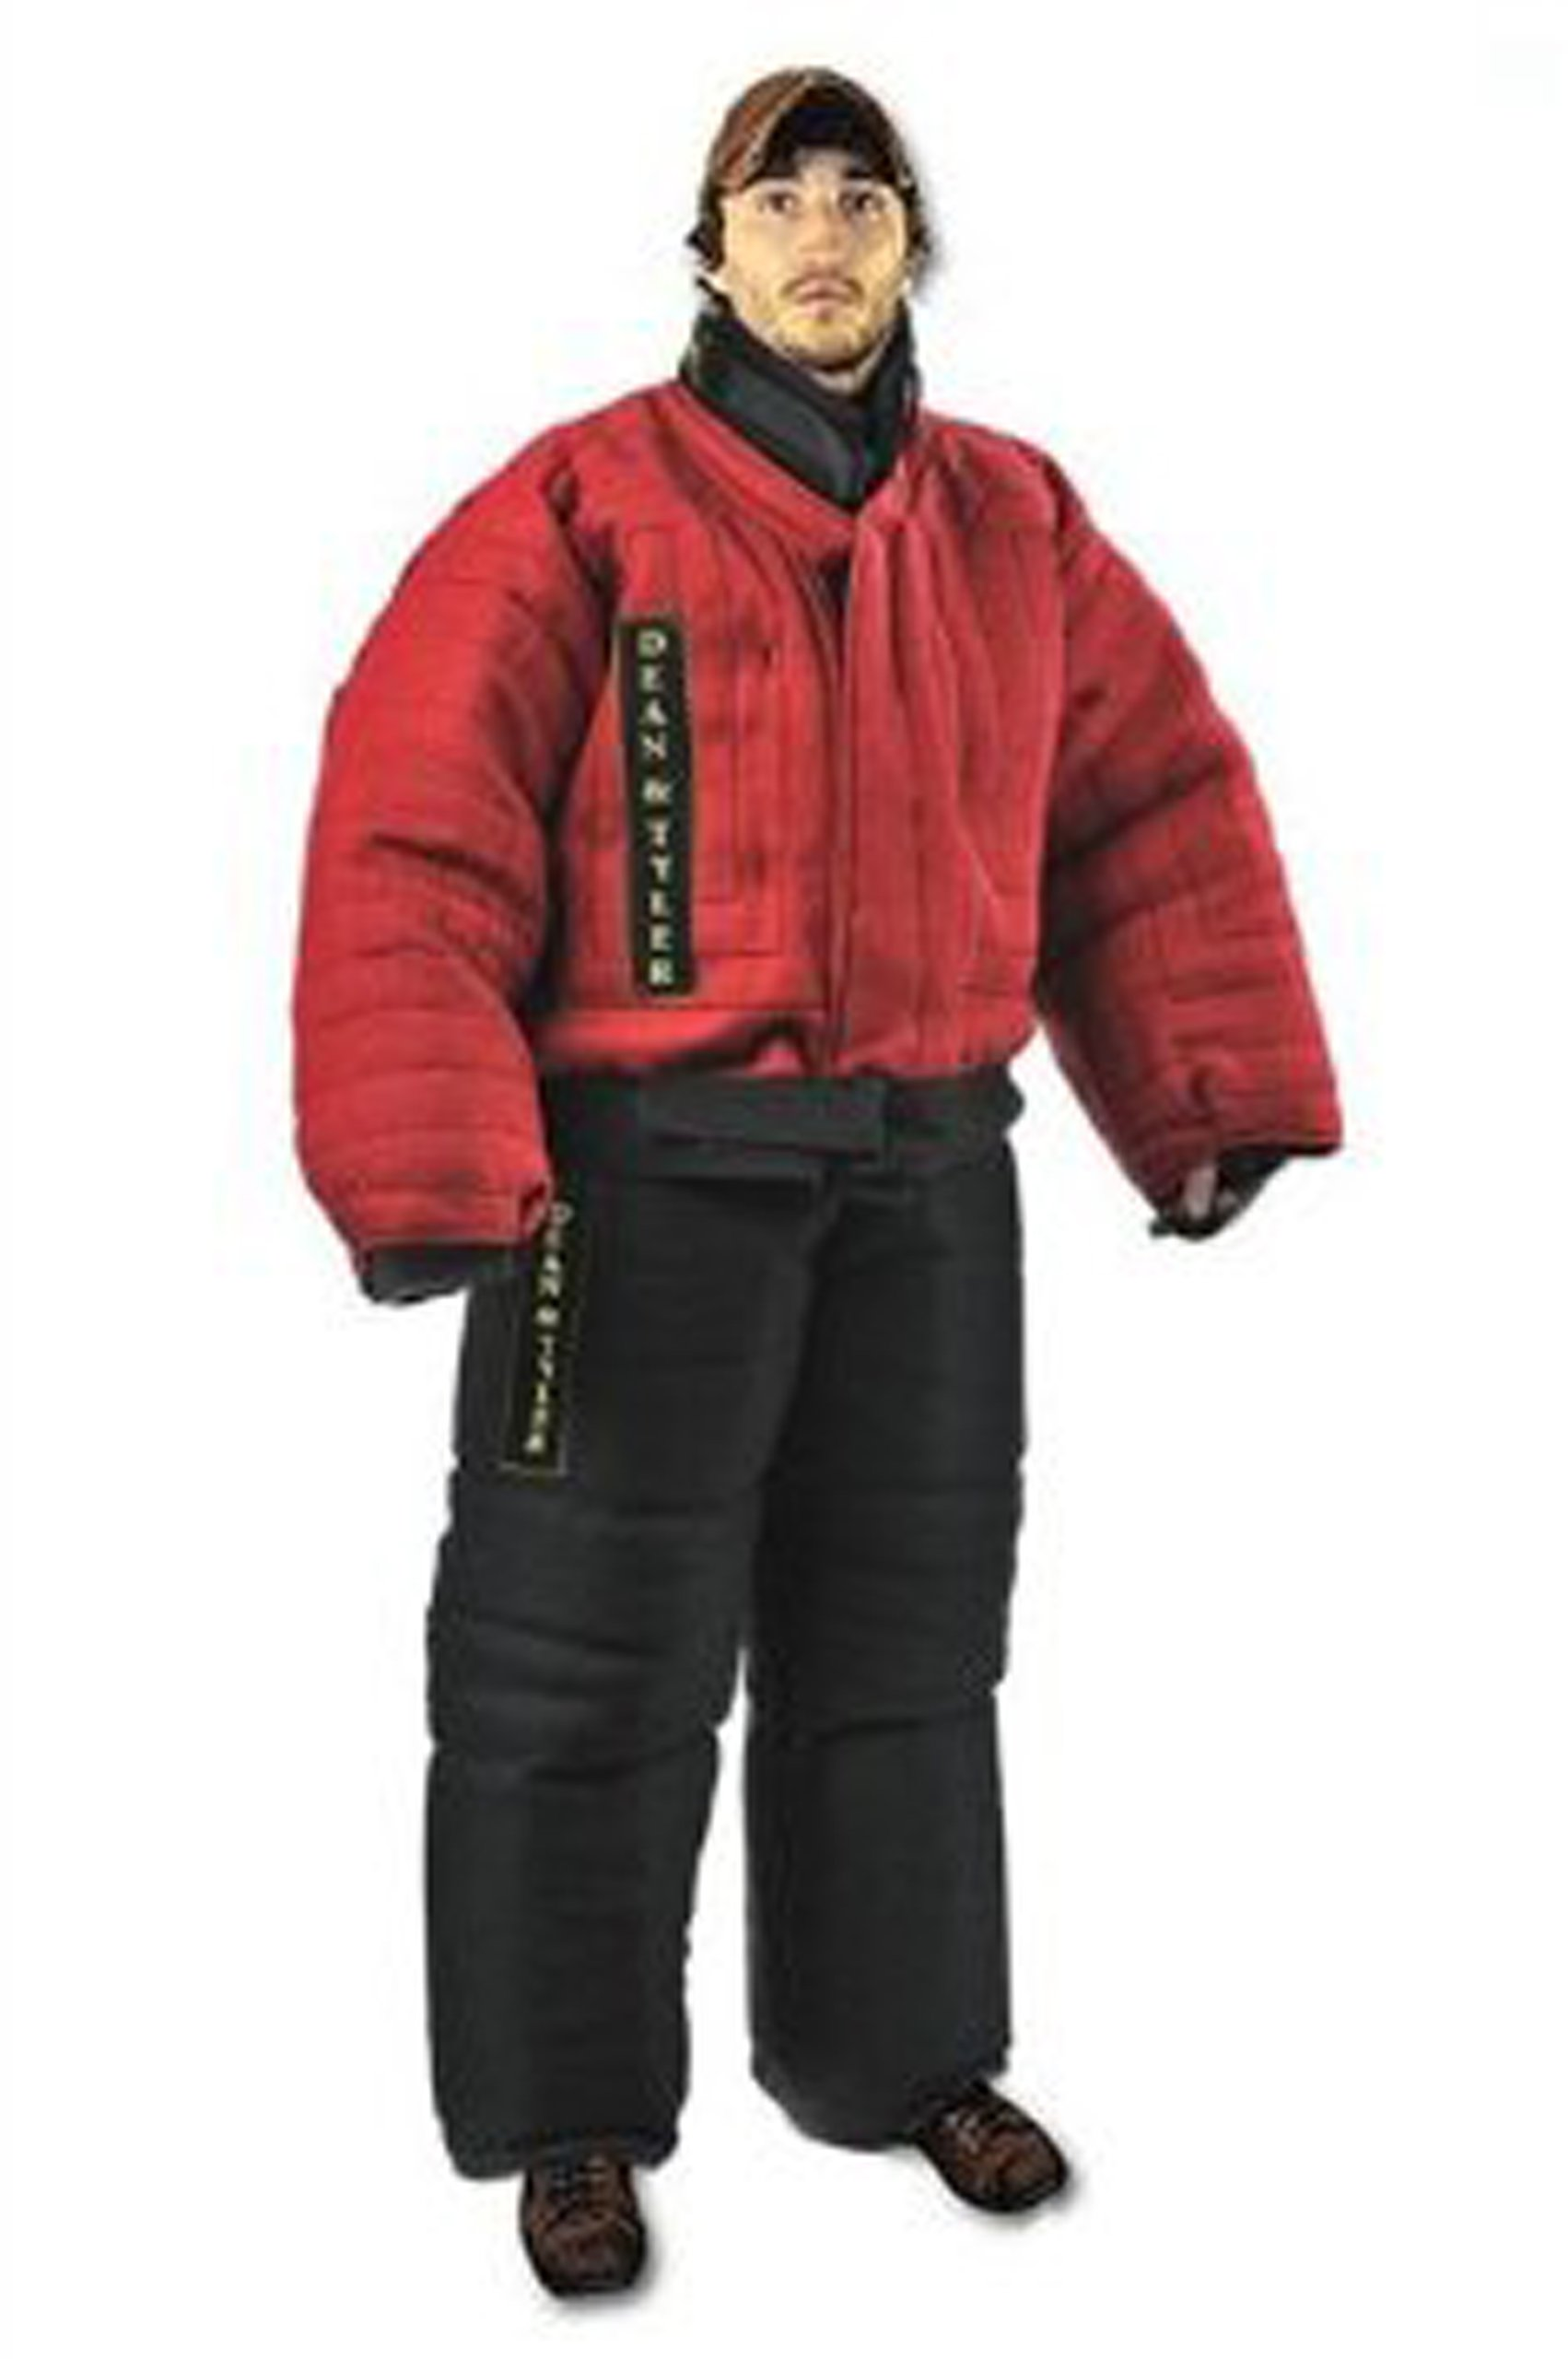 Dean and Tyler Full Protection Bite Suit, Strong French Linen - Red/Black - Size: Large (H: 5.6 to 5.10-Feet, W: 165 to 176-Pounds) by Dean & Tyler